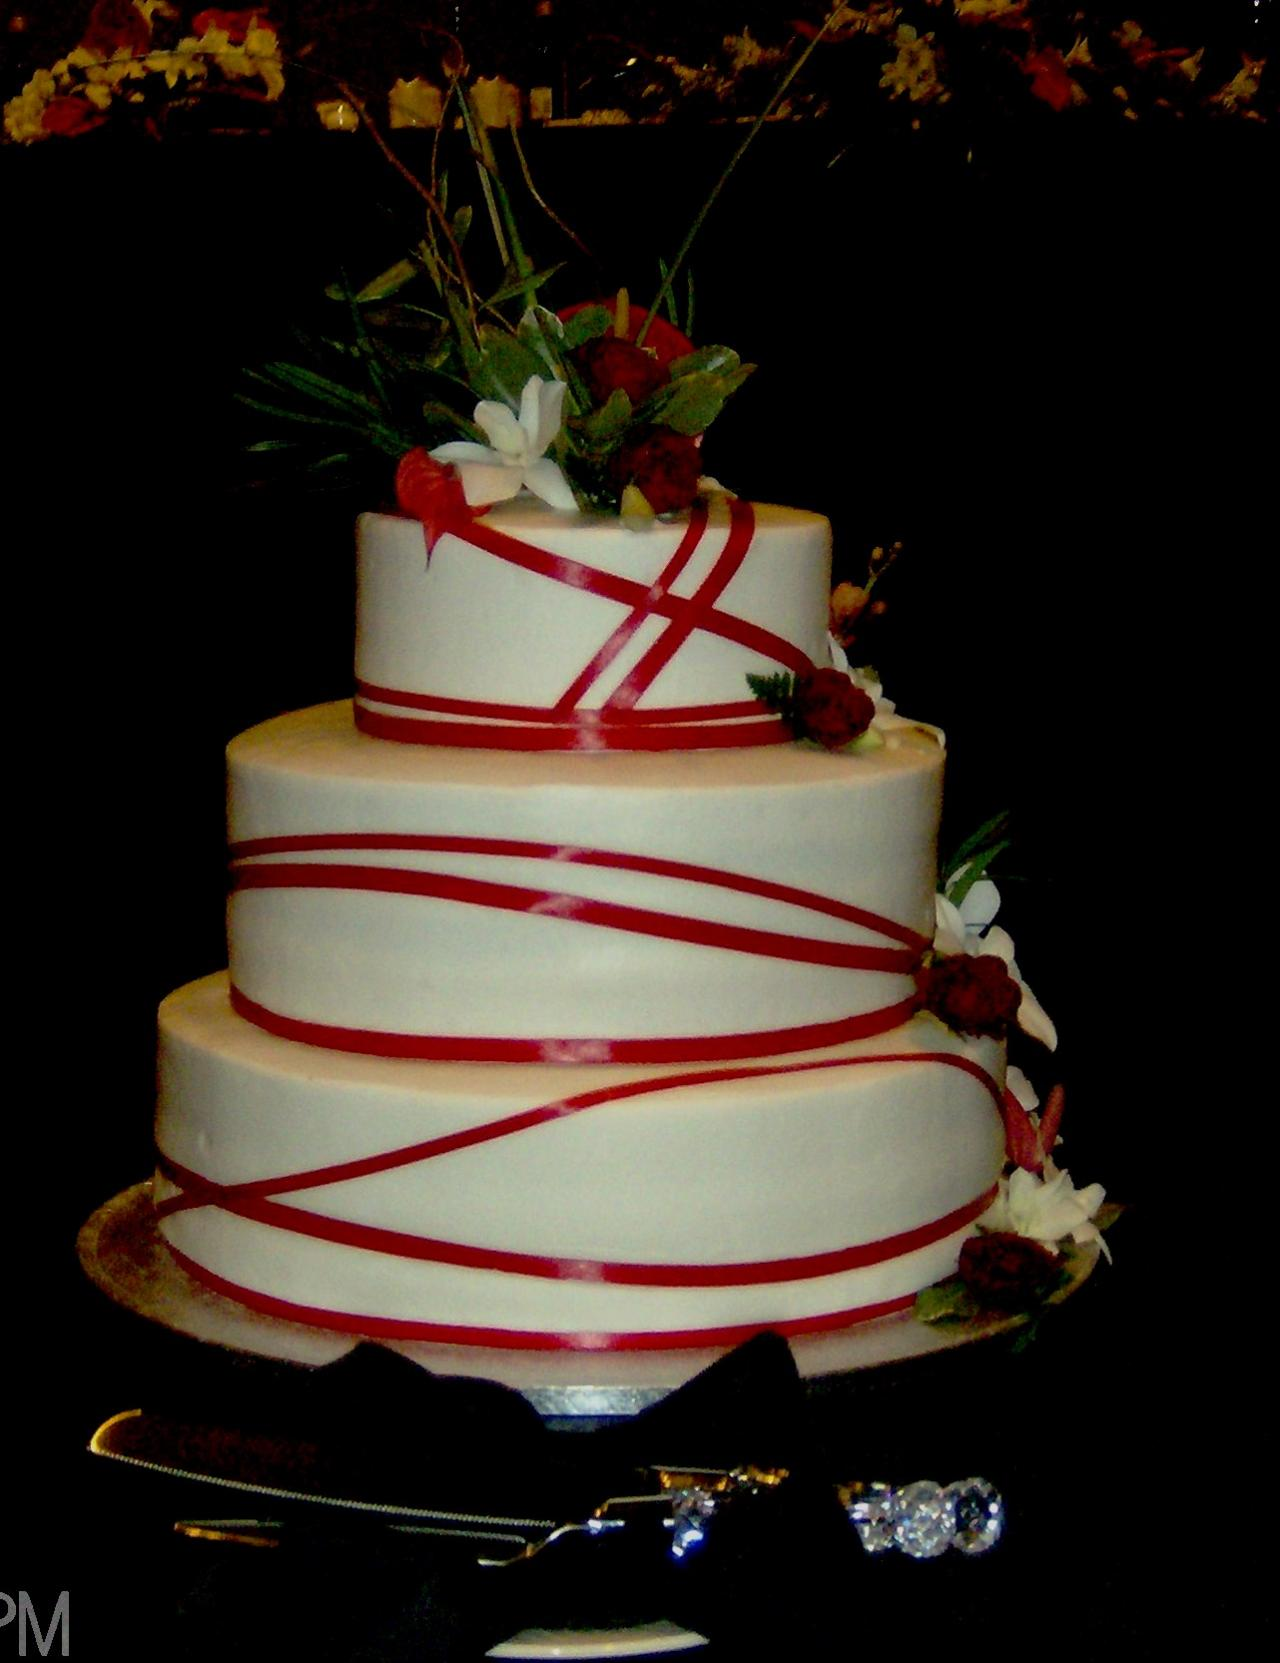 wedding cakes richmond indiana valparaiso coupons for pizza grocery shopping 25370